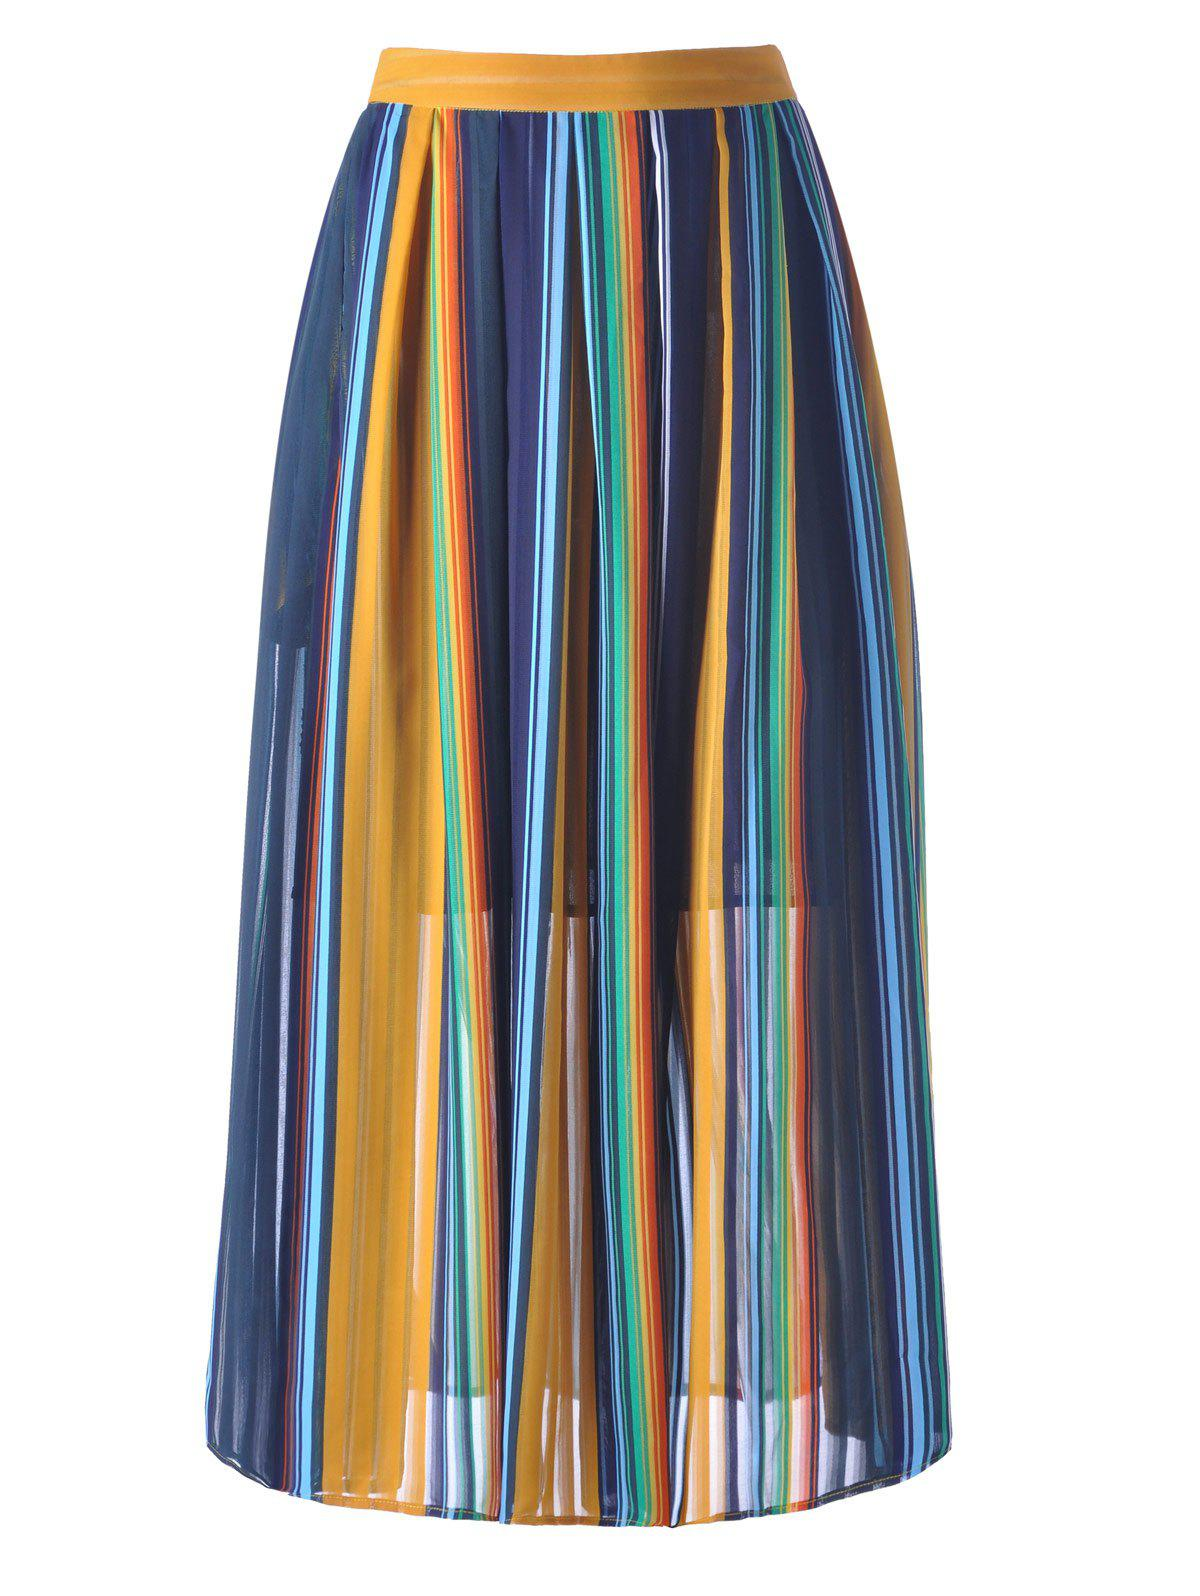 Fashionable Women's Loose-Fitting High-Waisted Stripe Skirt